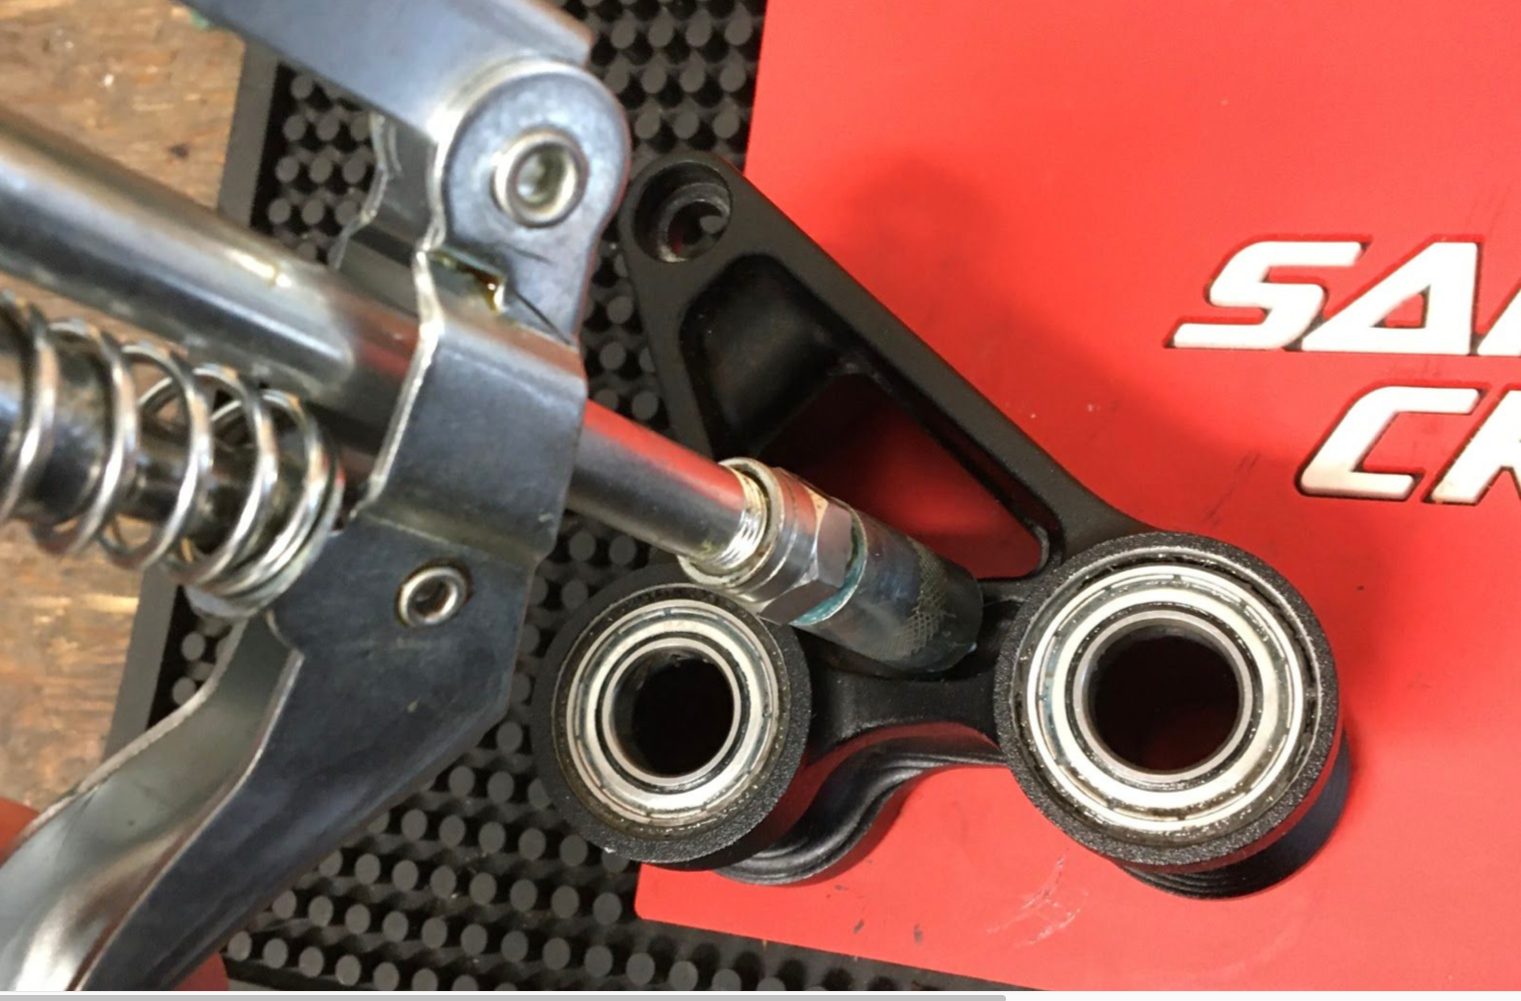 One thing many riders overlook is checking on the condition of their bike suspension linkages—that is, the bearings and hardware they run on.